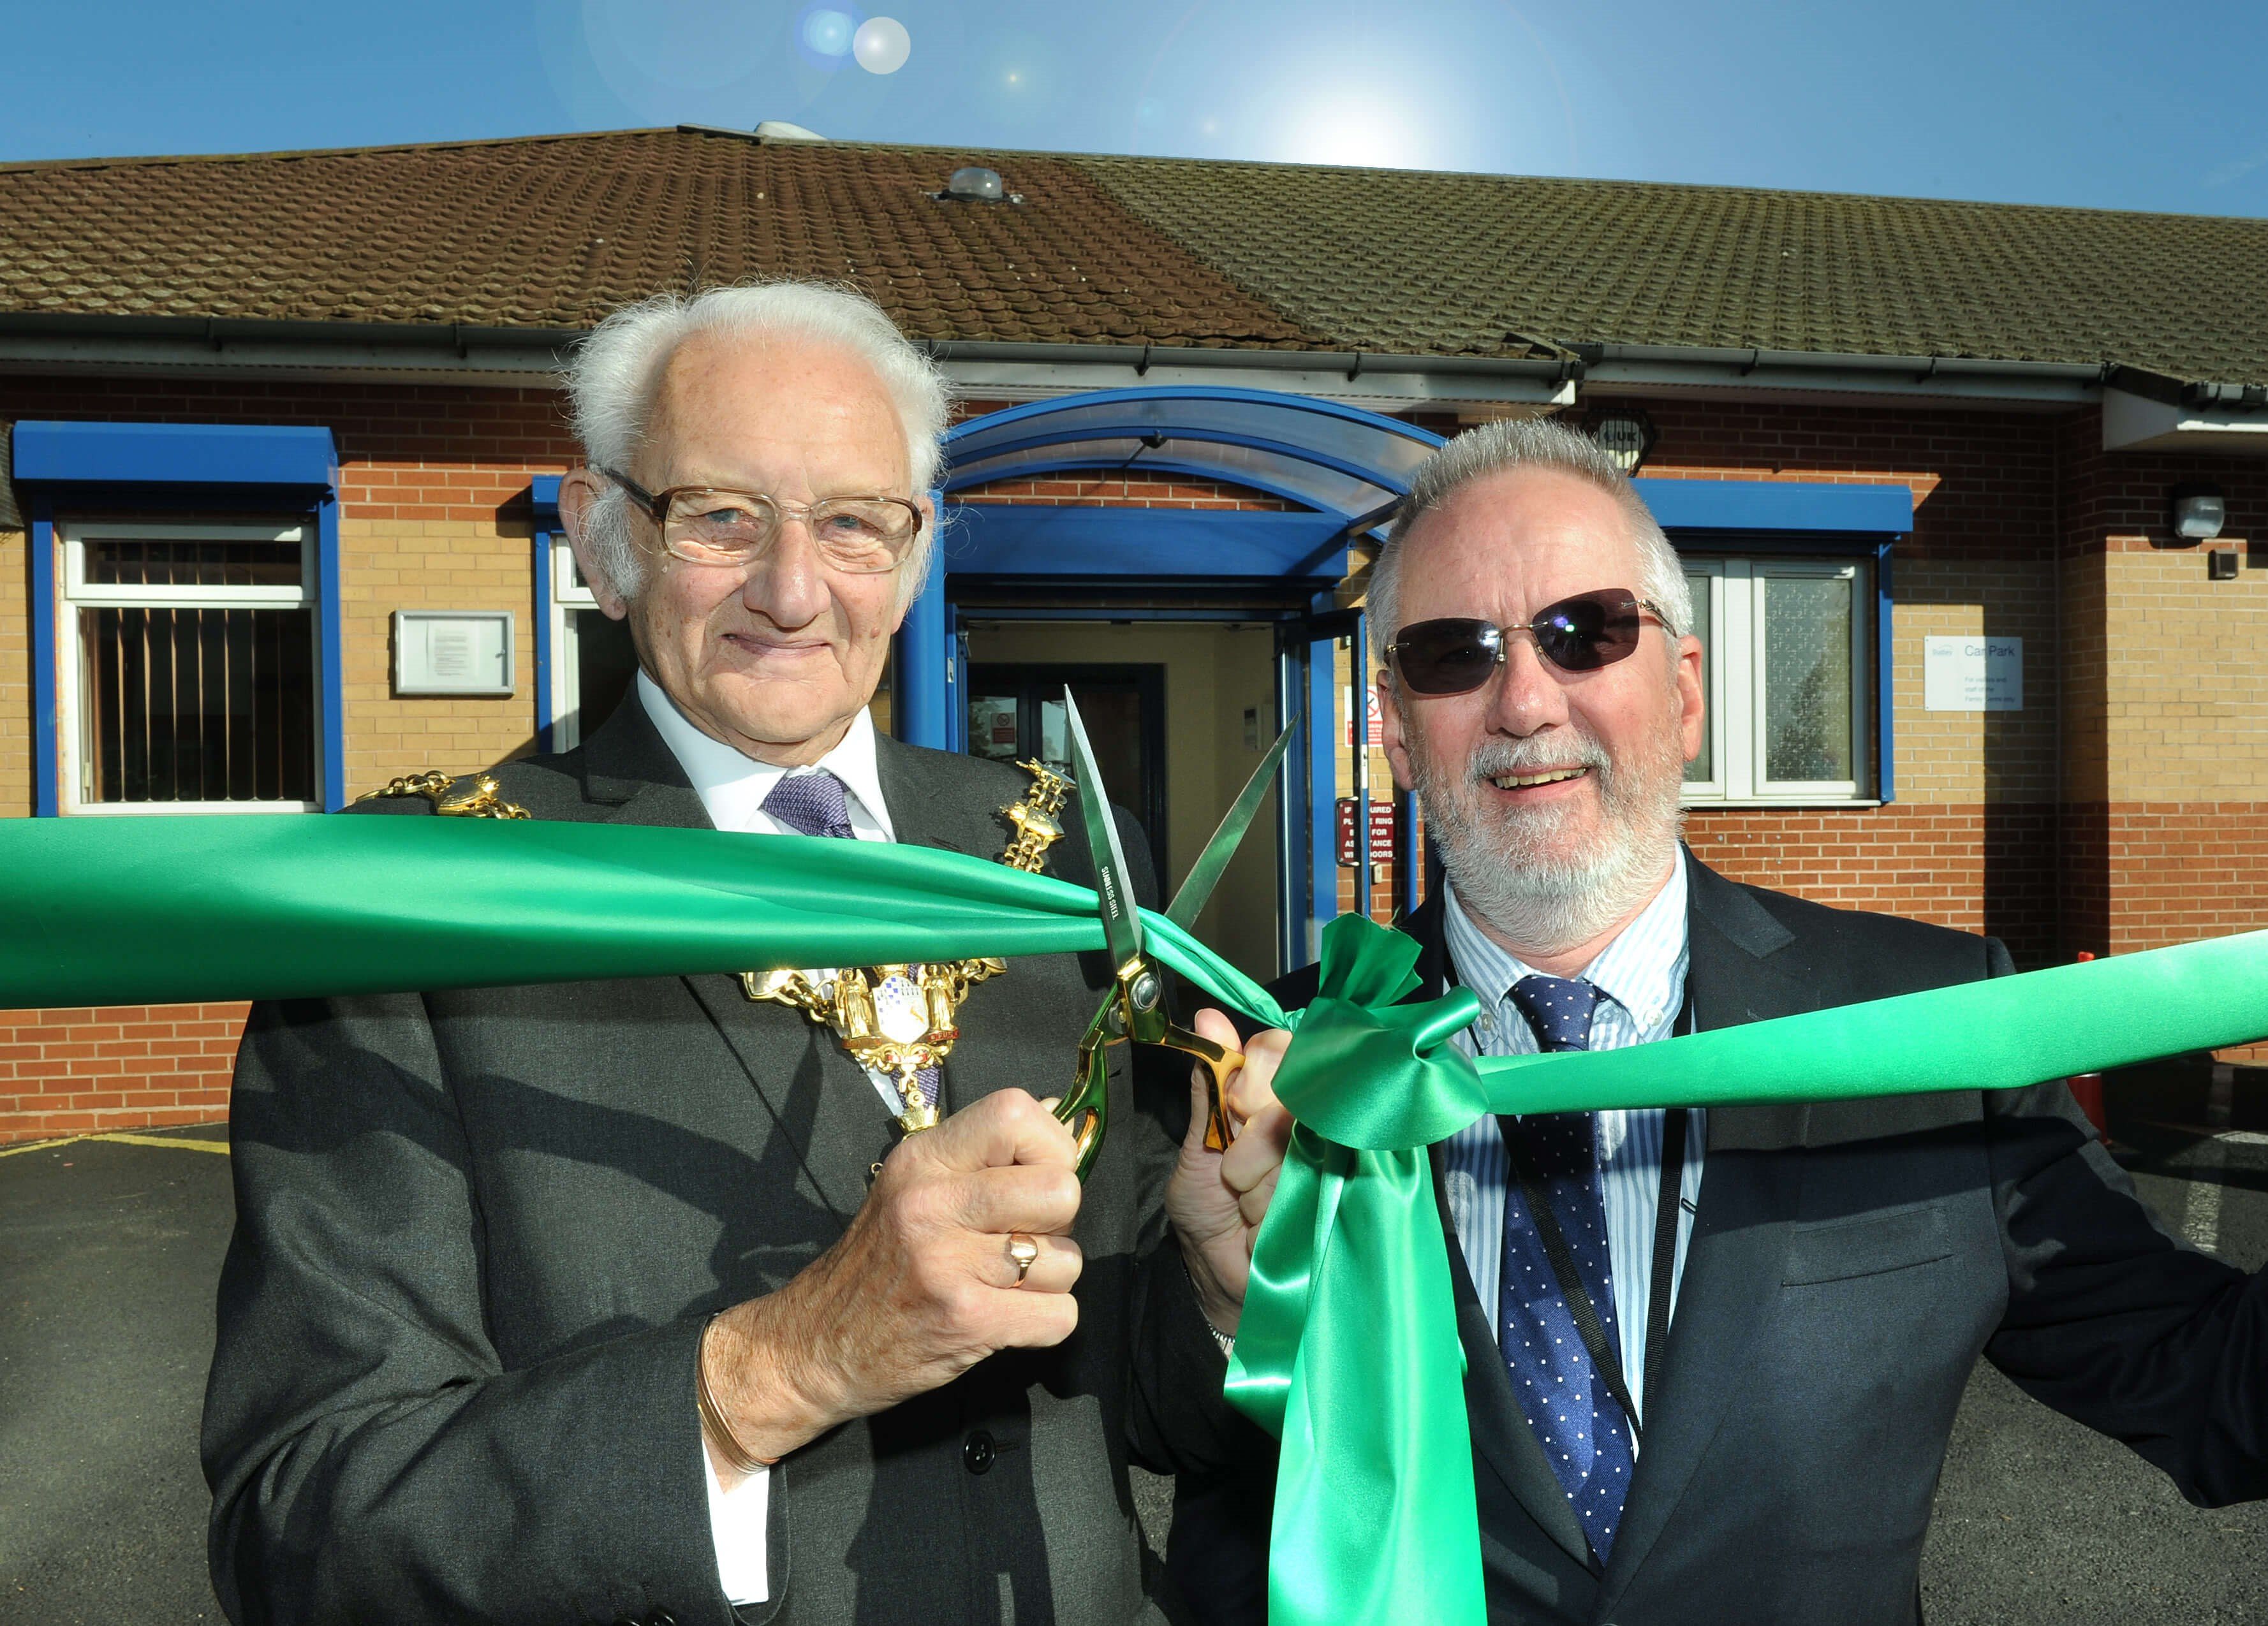 New family centre opens in Coseley